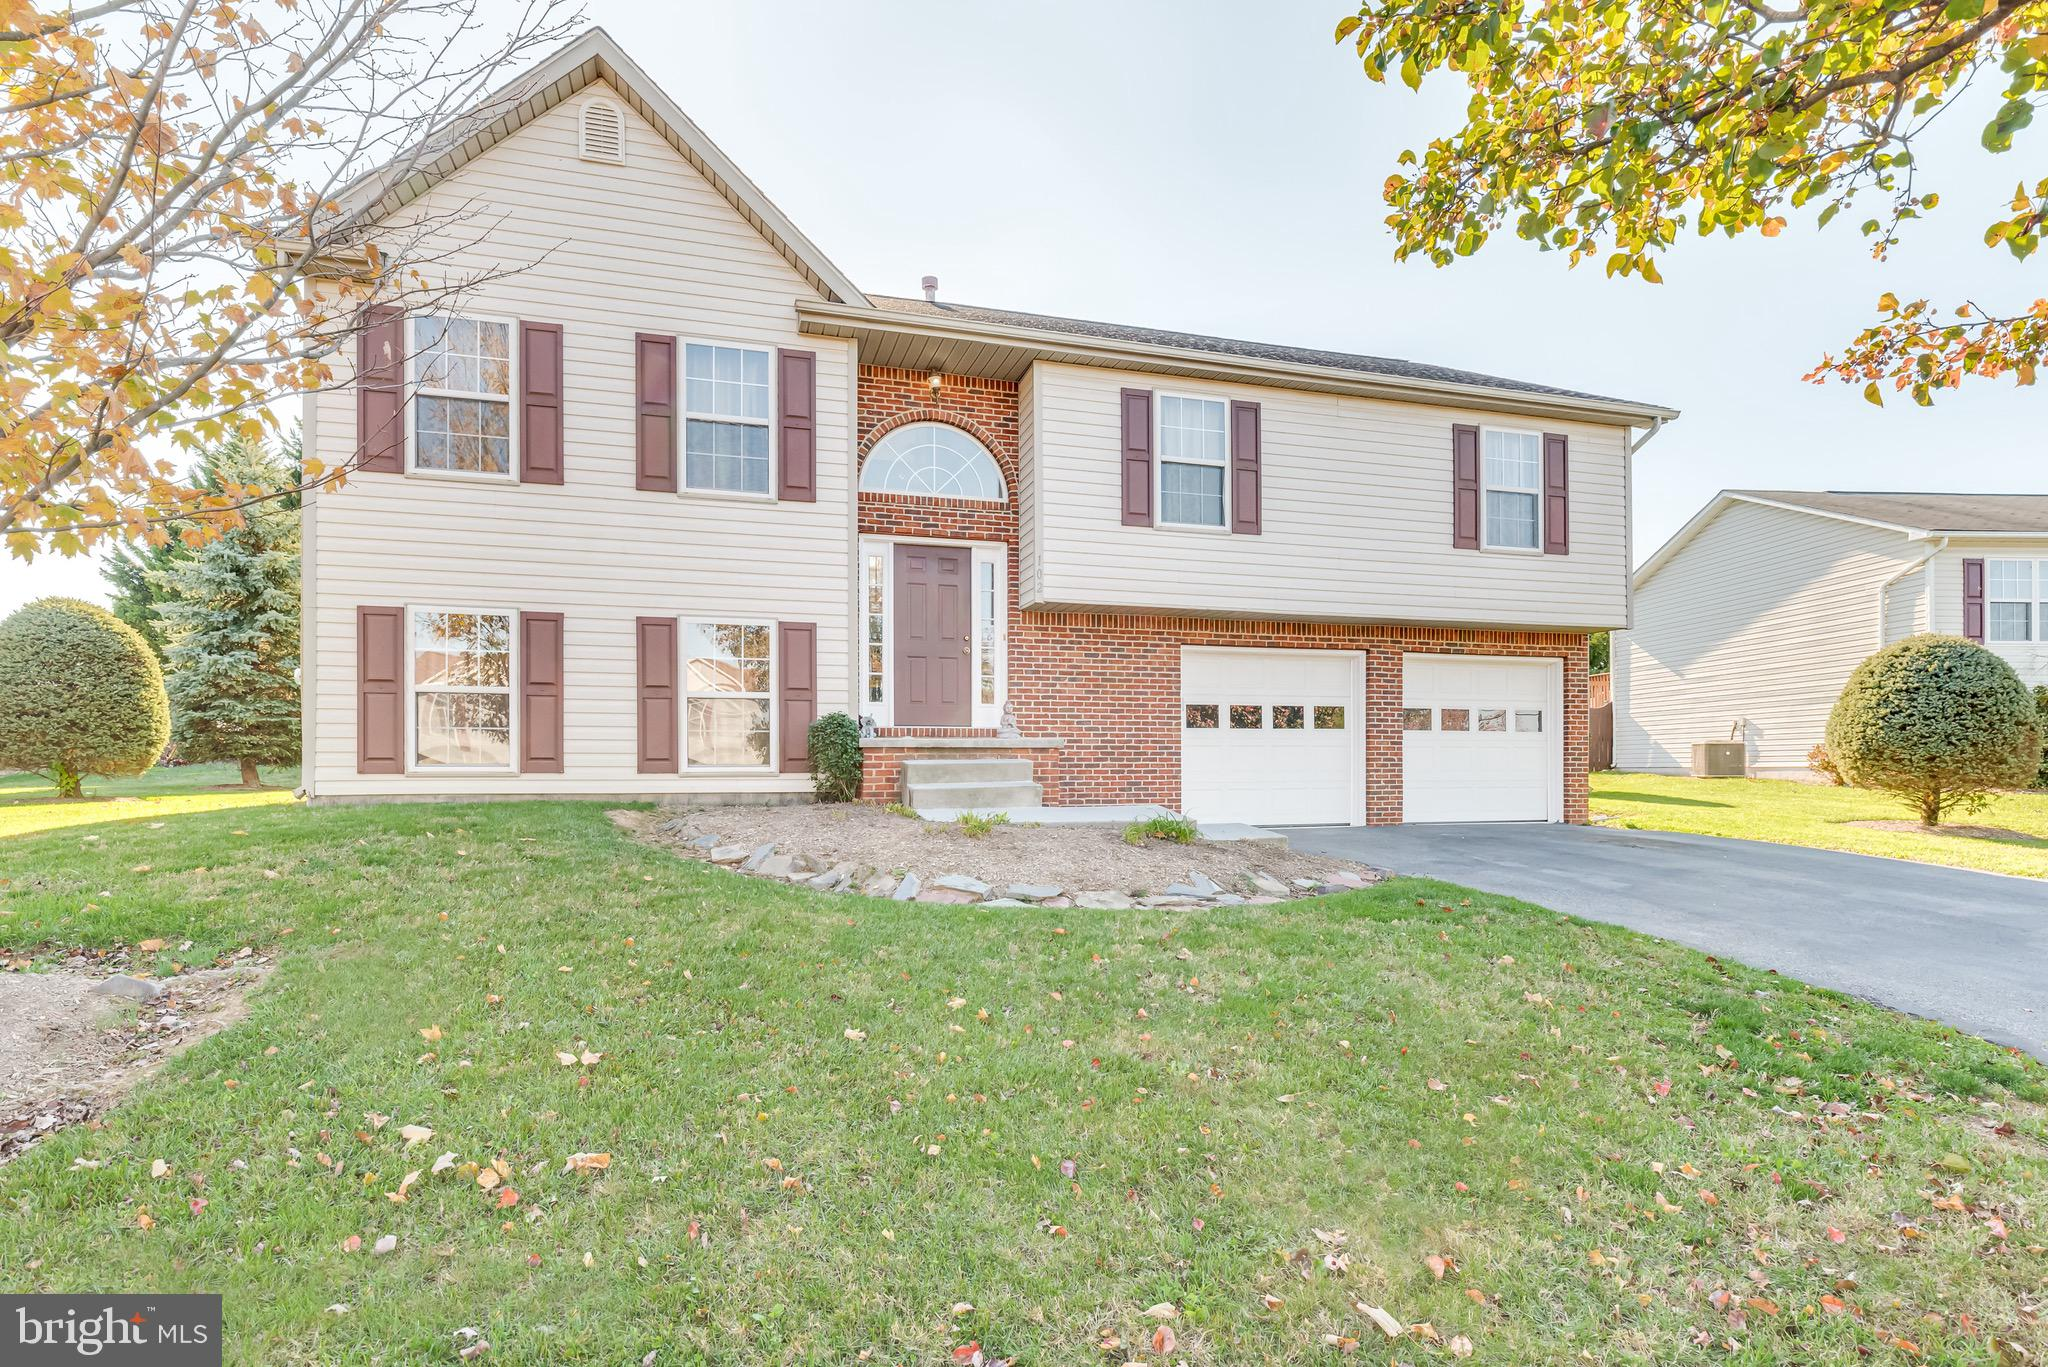 Strategically located near major commuter thorough fares this spacious split foyer features multiple